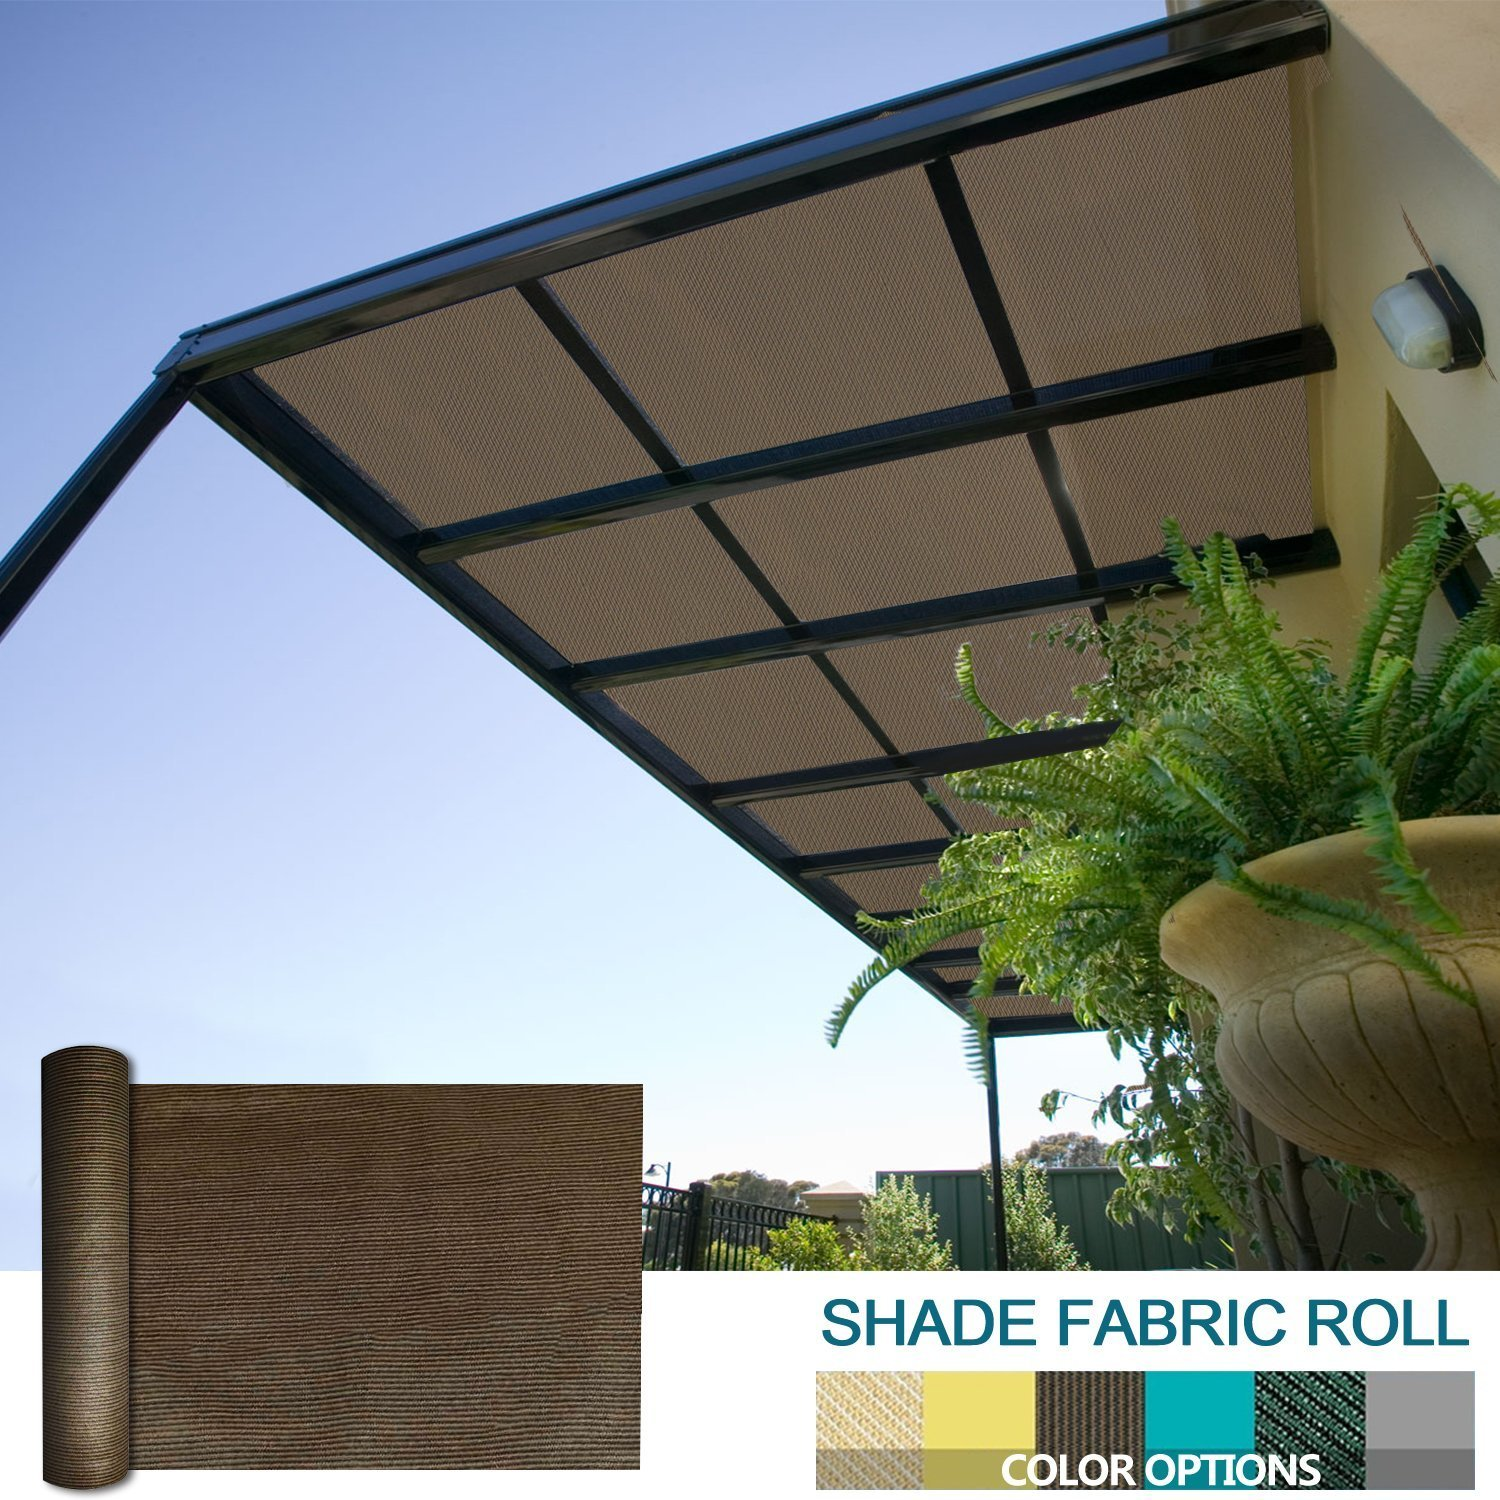 Coarbor 16Ft x 13Ft Shade Cloth Pergola Patio Cover Provide Shade Fabric Roll Customized Mesh Screen Heavy Duty Provide Privacy Permeable UV Resistant Make to Order- Brown